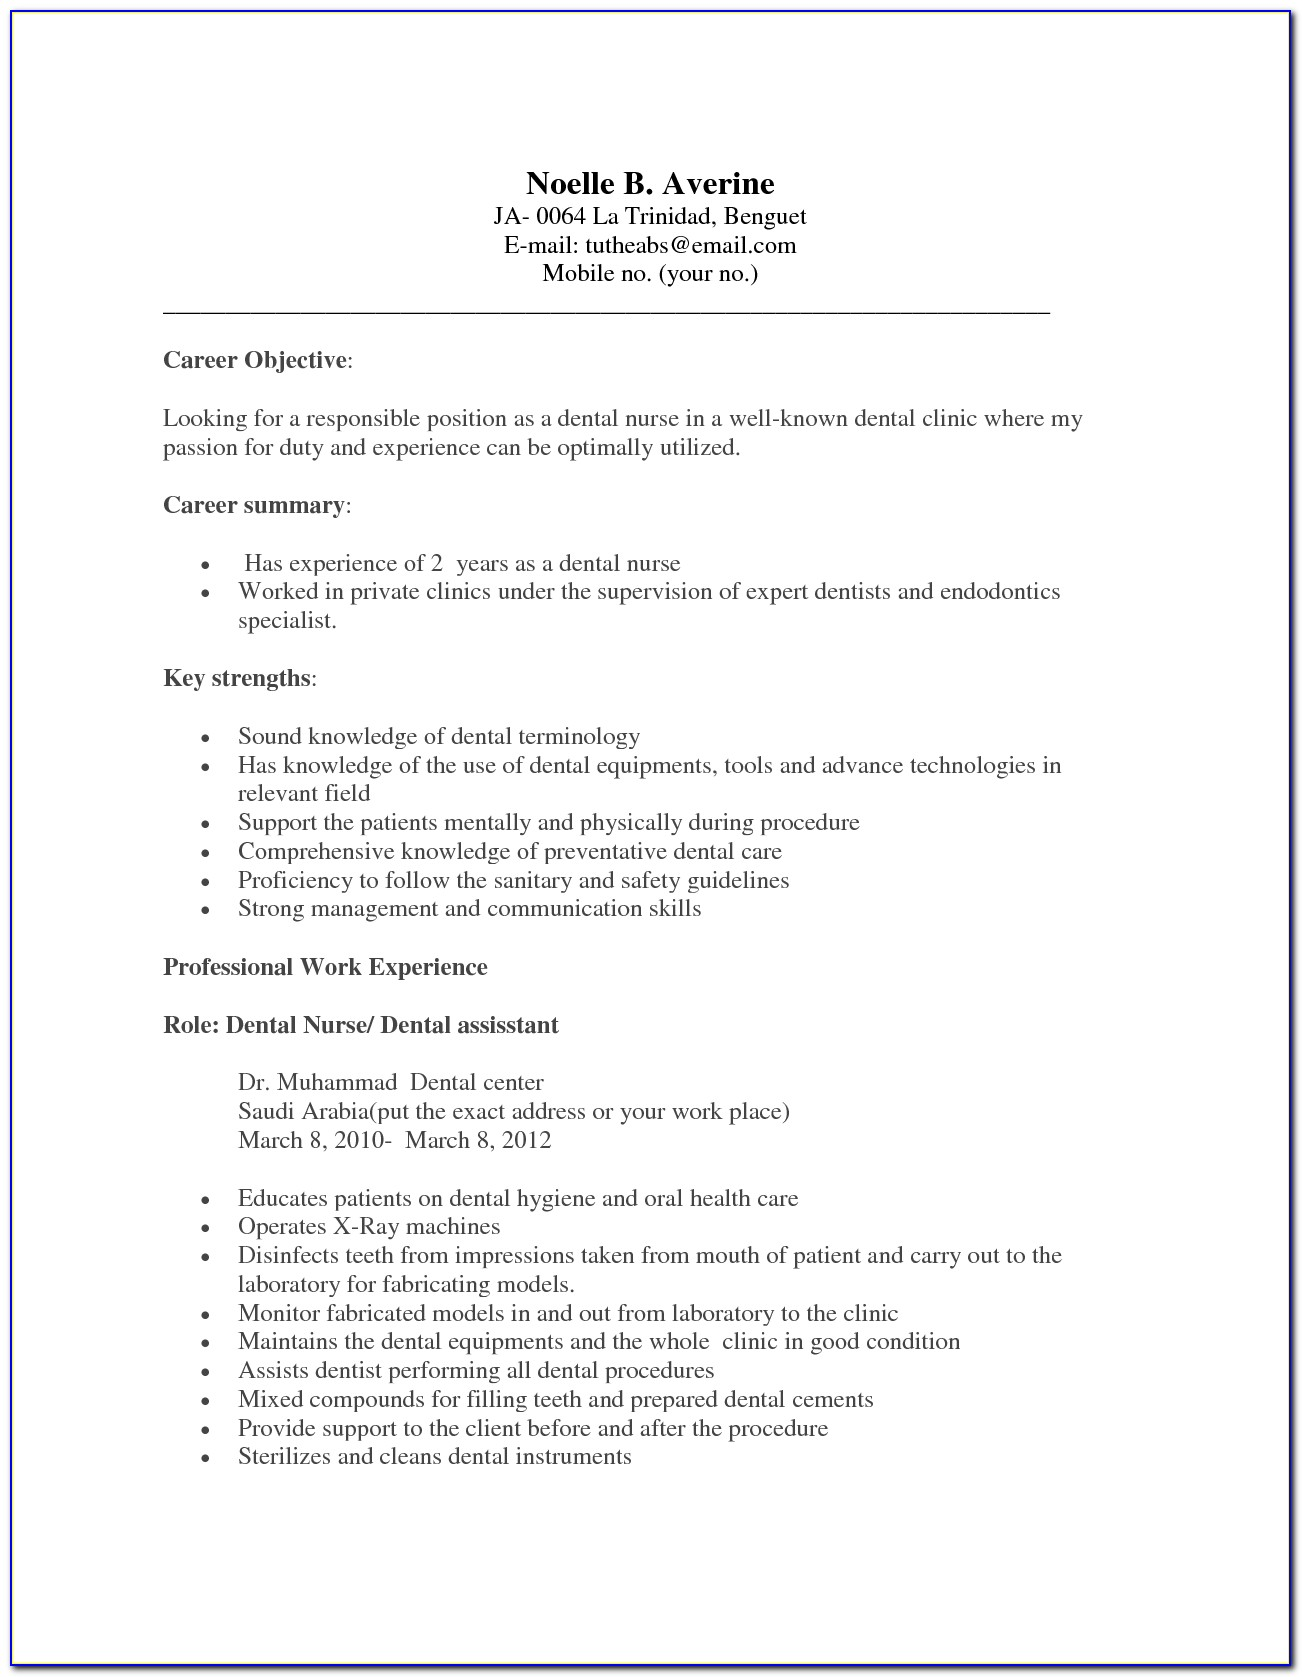 resume for dental assistant with experience vincegray2014 examples no oilfield on word Resume Dental Assistant Resume Examples With No Experience